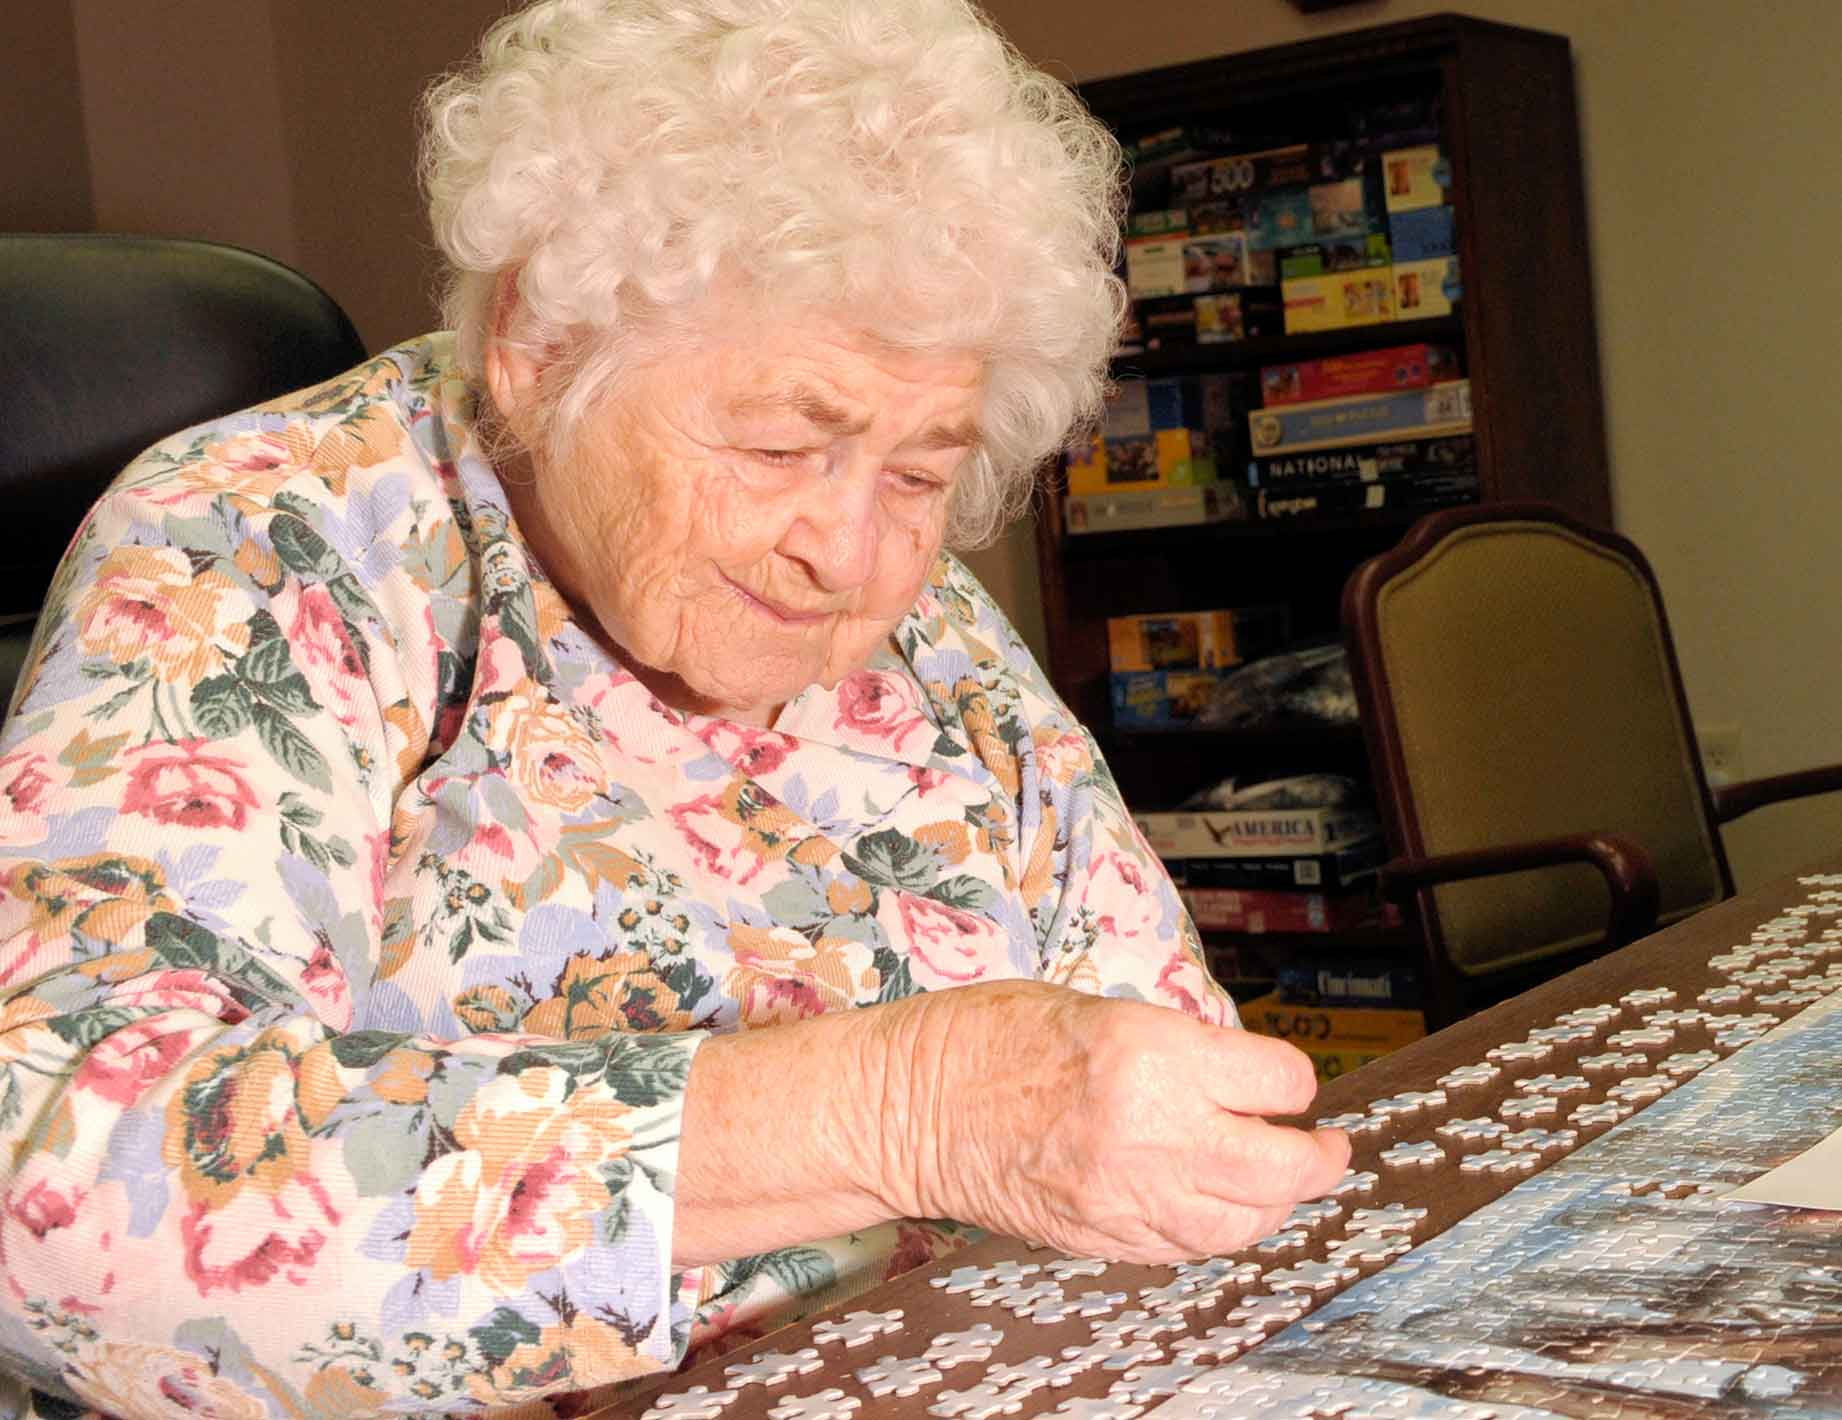 Elderly Lady Working on a Puzzle